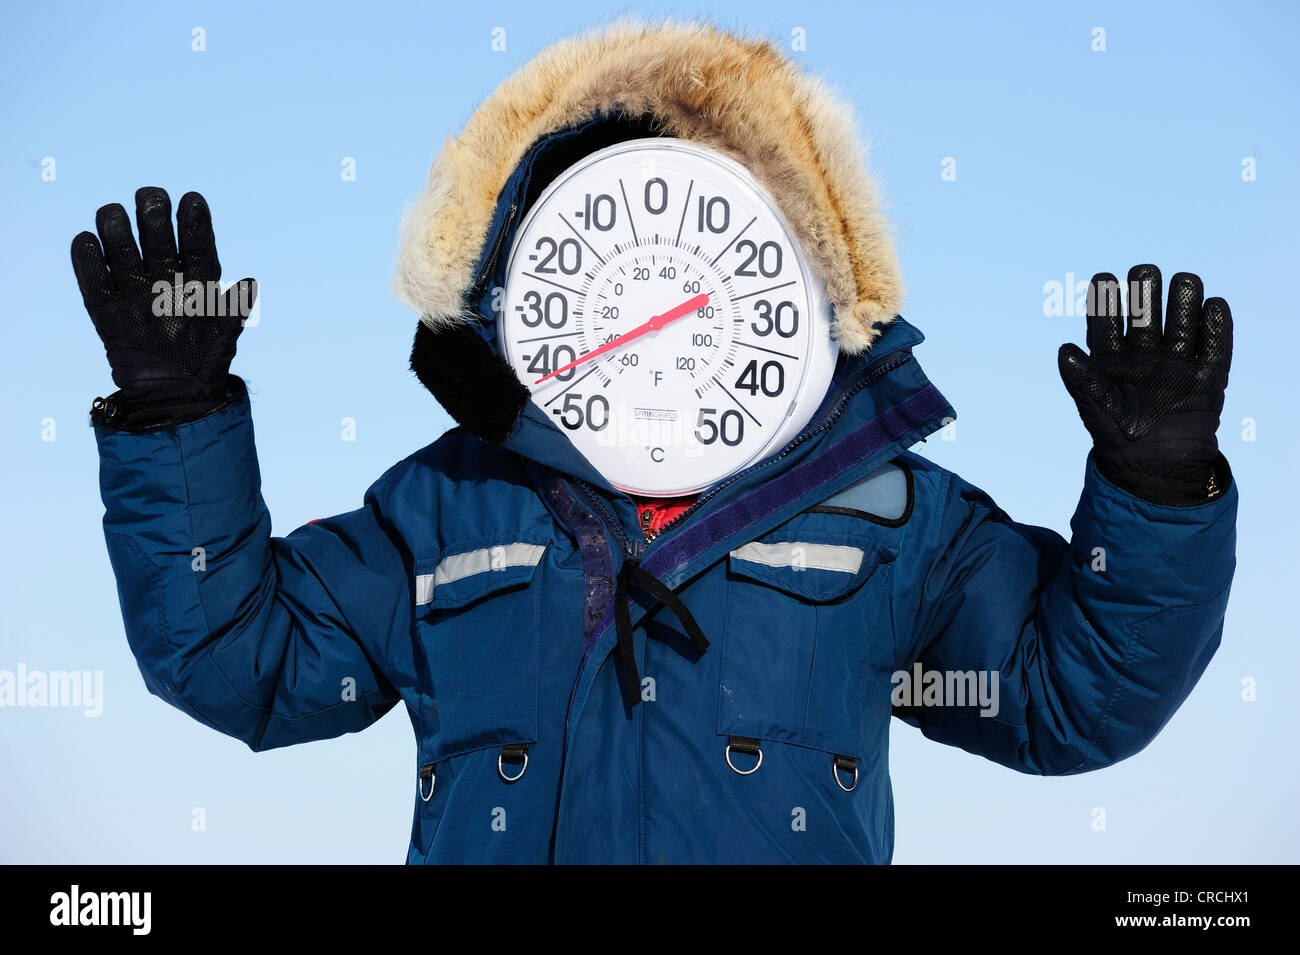 Thermometer Face Indicating Below Minus 40 Degrees Celsius In Winter In The Arctic Hudson Bay